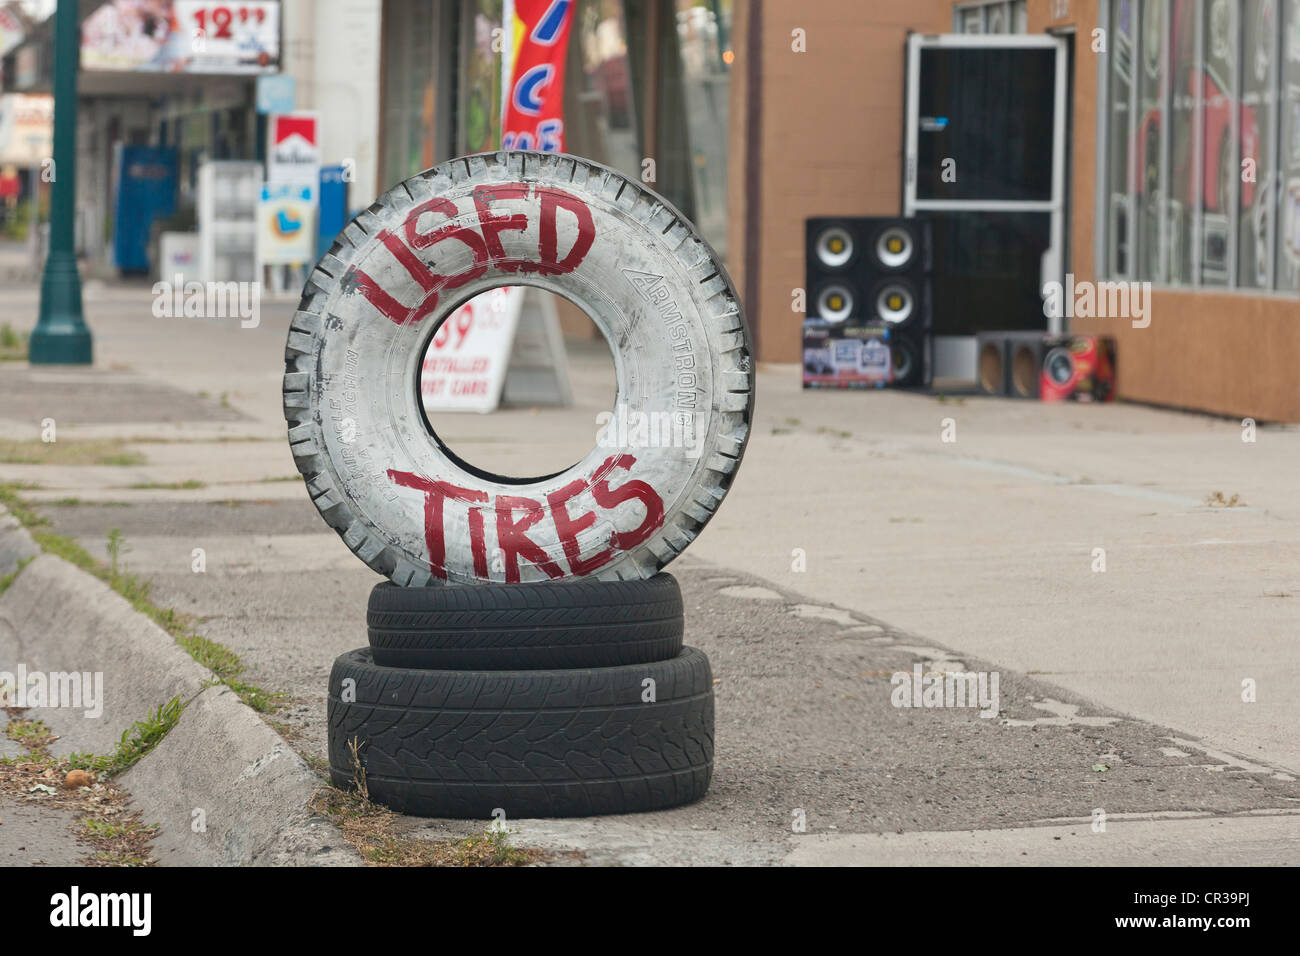 Used tires display - Stock Image